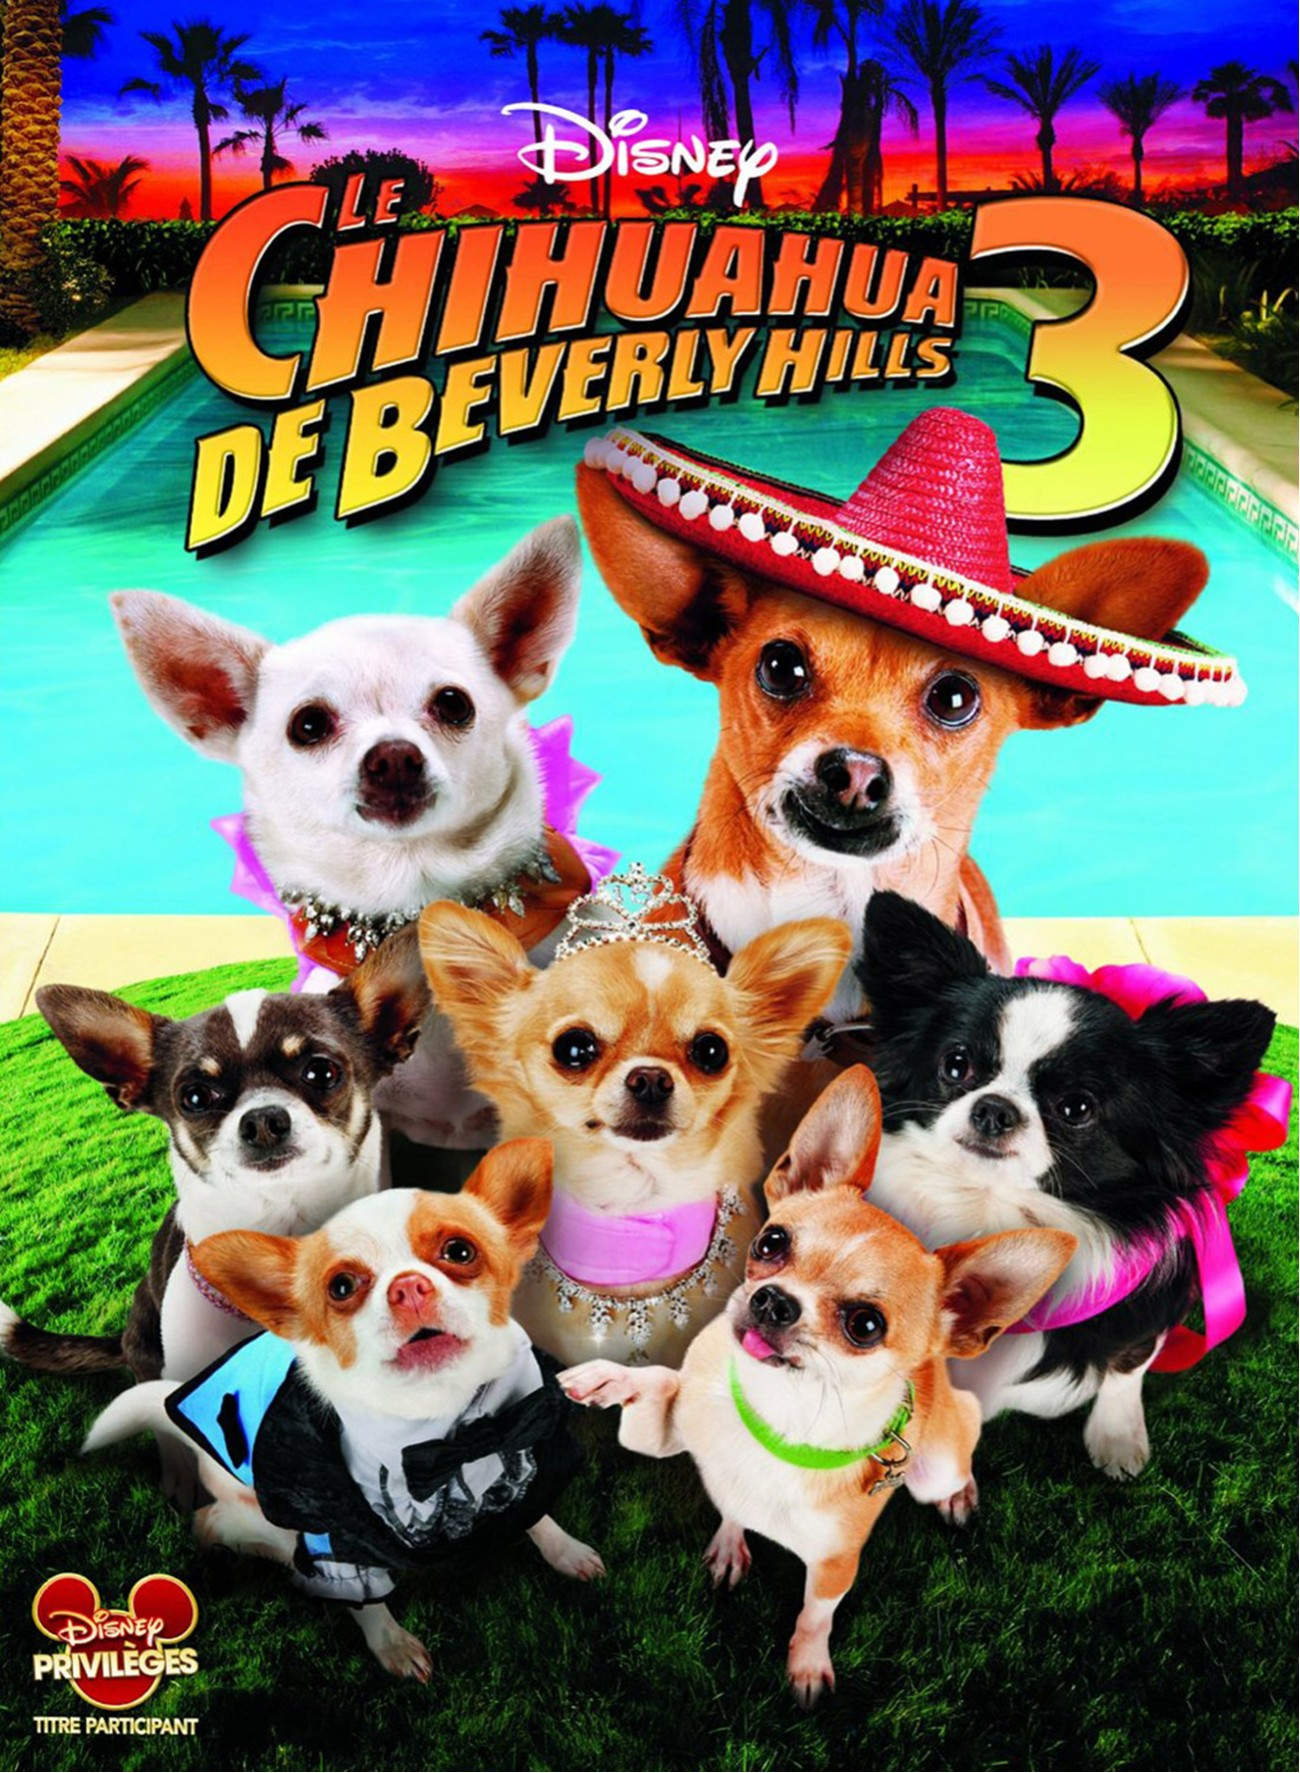 walt disney company walt disney pictures affiche chihuahua beverly hills 3 poster viva fiesta